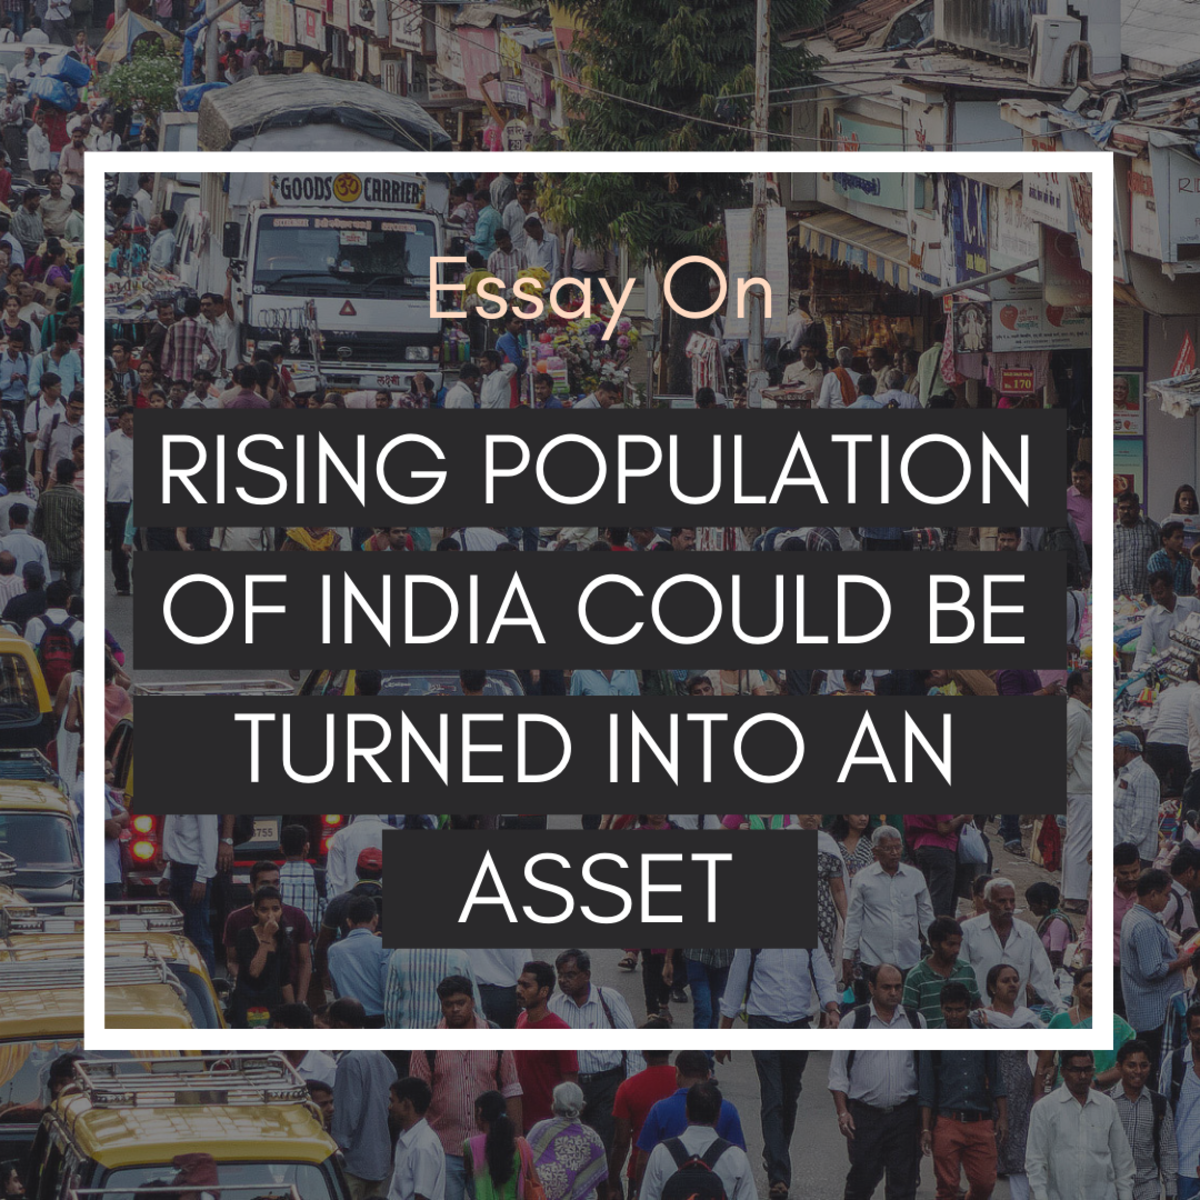 Essay on Rising Population of India Could Be Turned Into An Asset